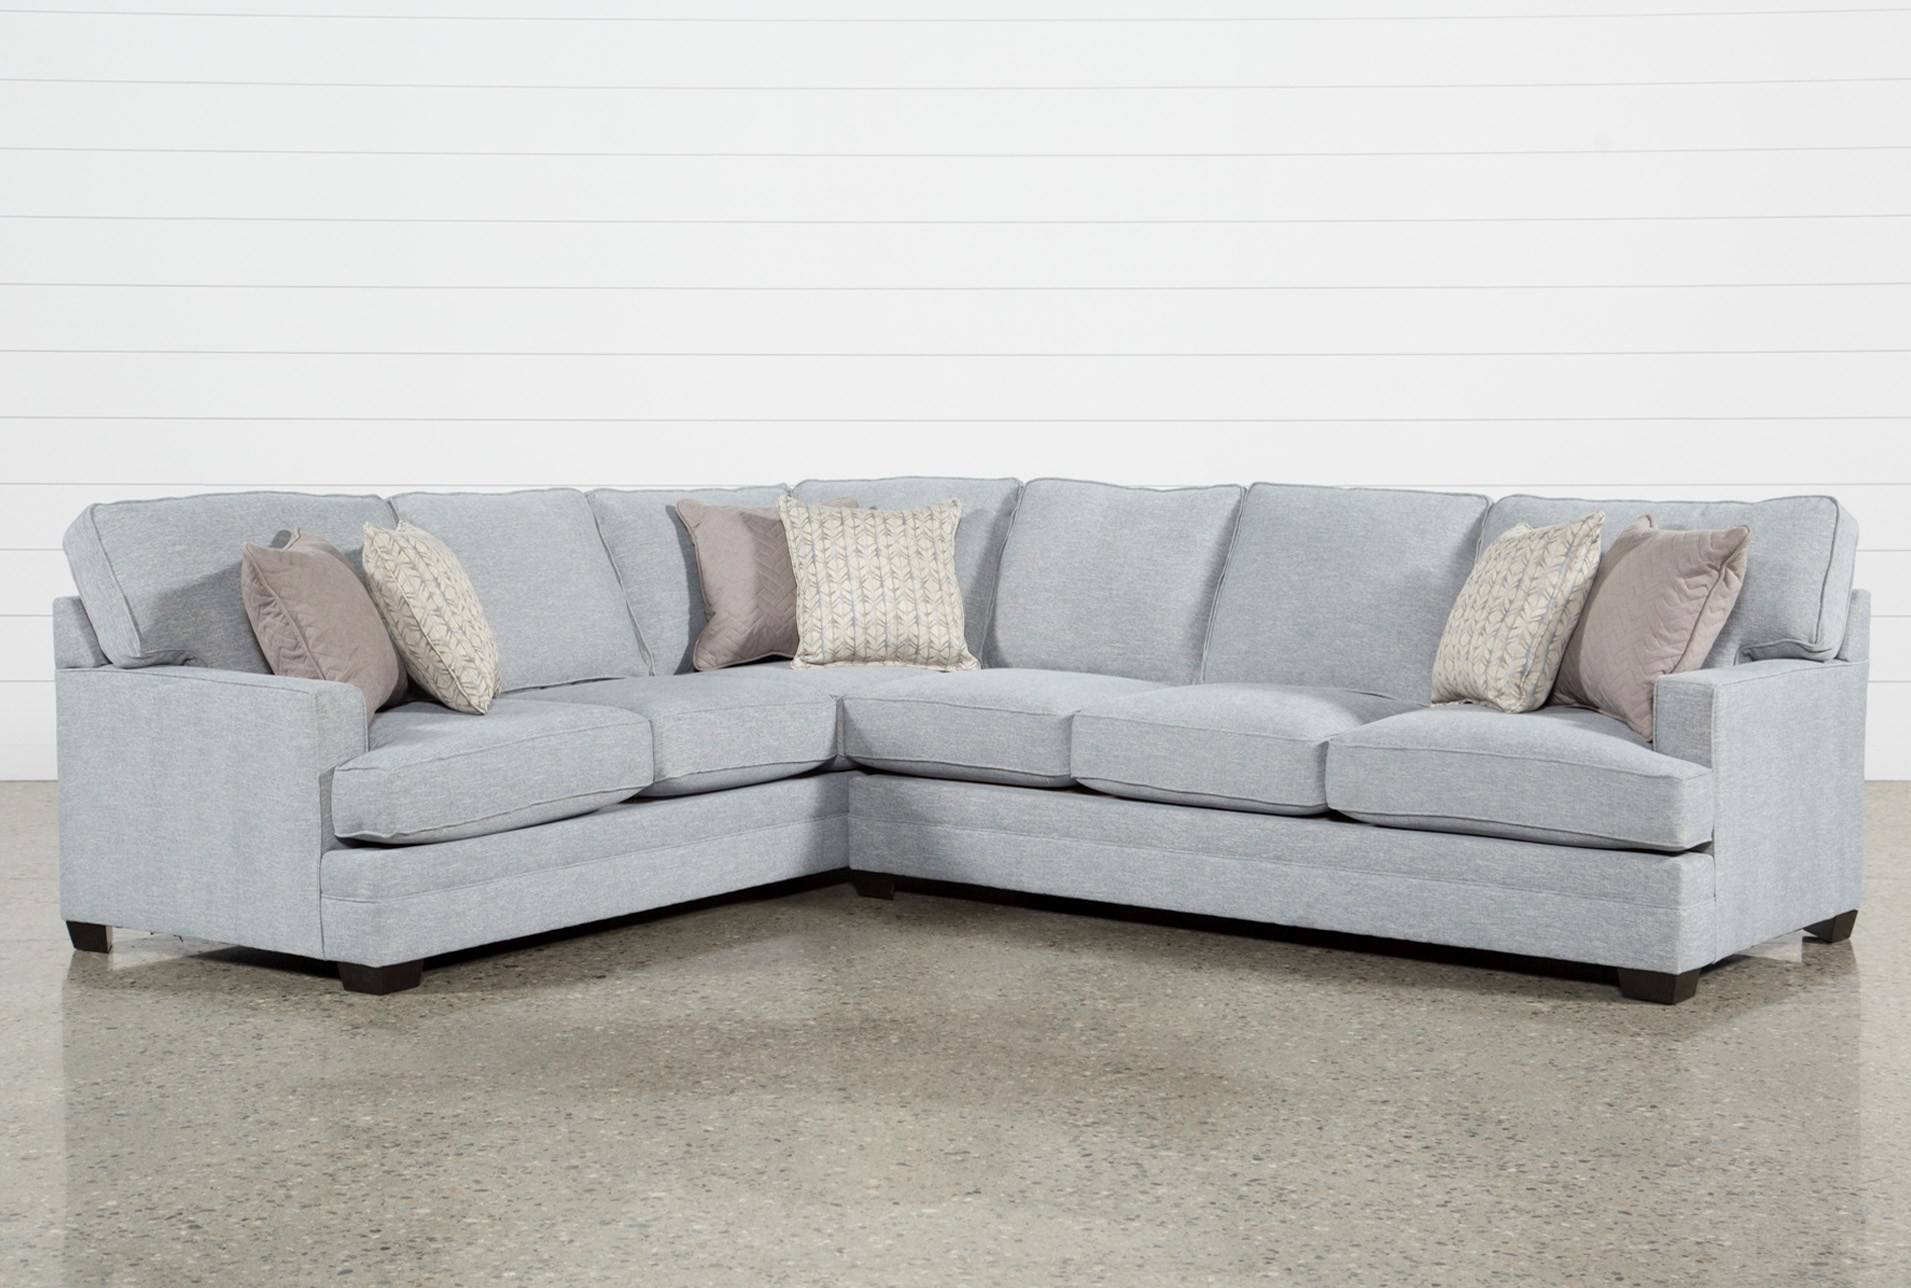 Living Spaces Sectional Couches – Implantologiabogota (Image 22 of 25)